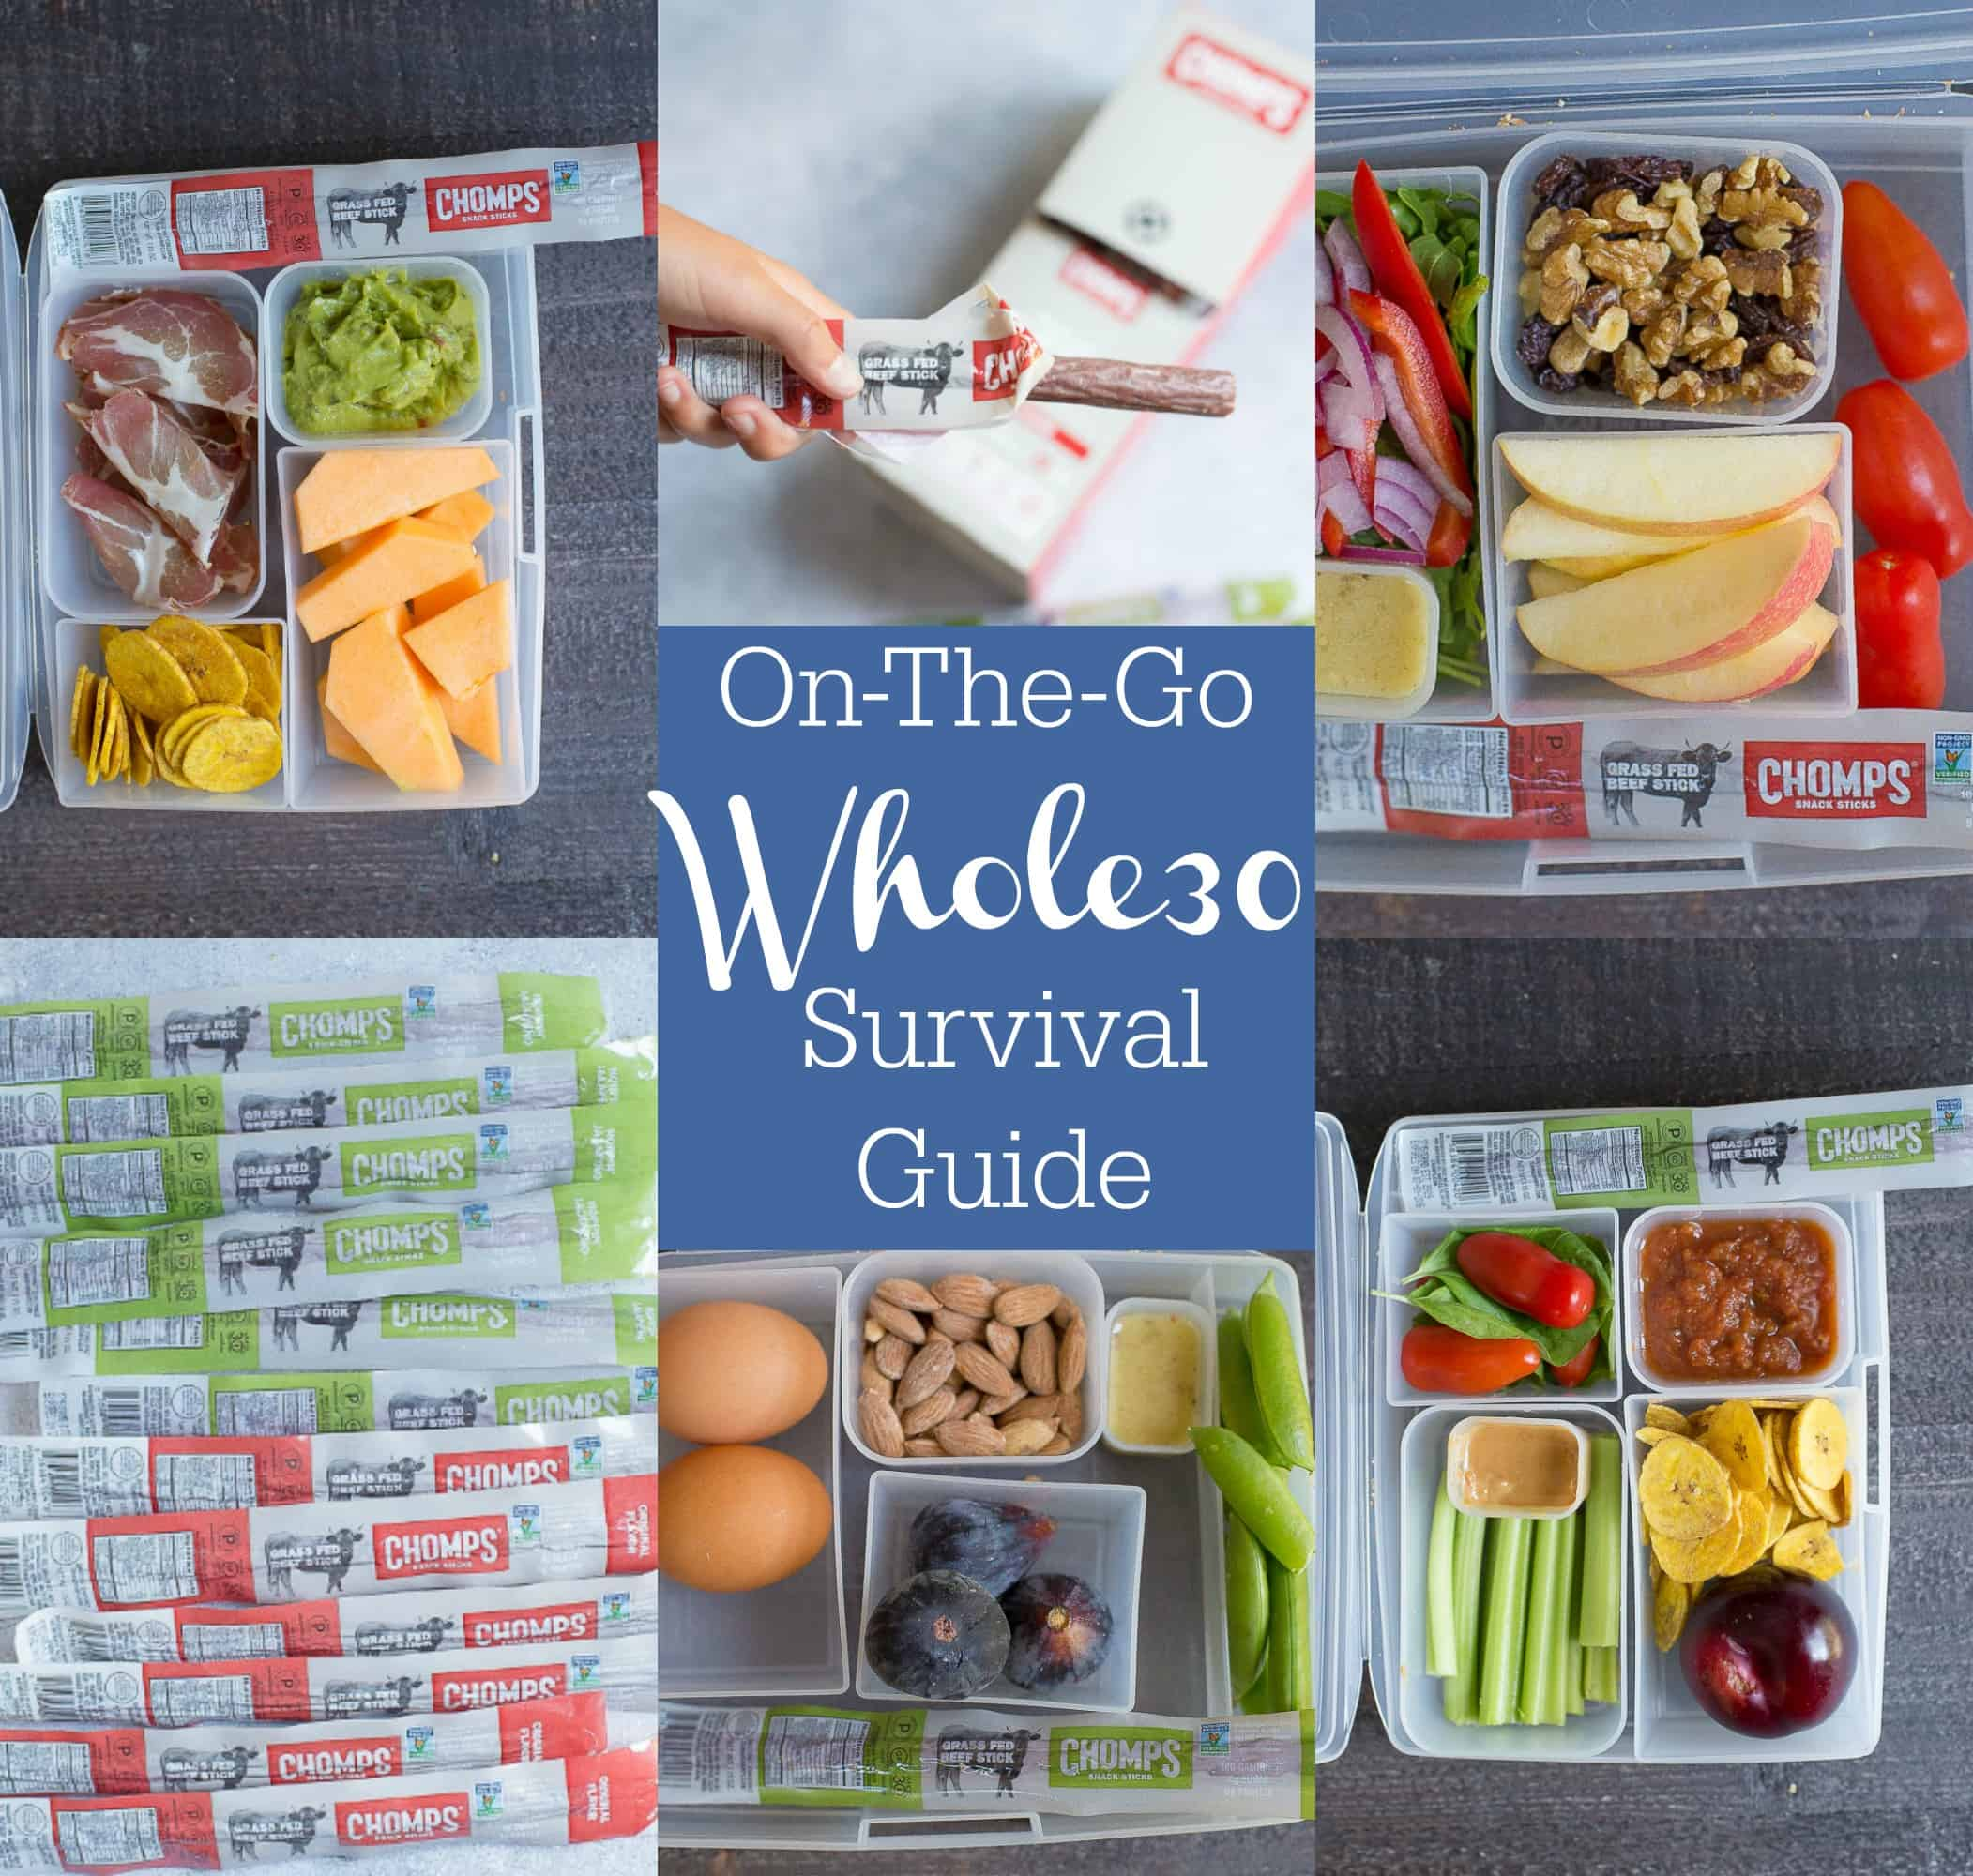 On The Go Whole30 Survival Guide Wholesomelicious